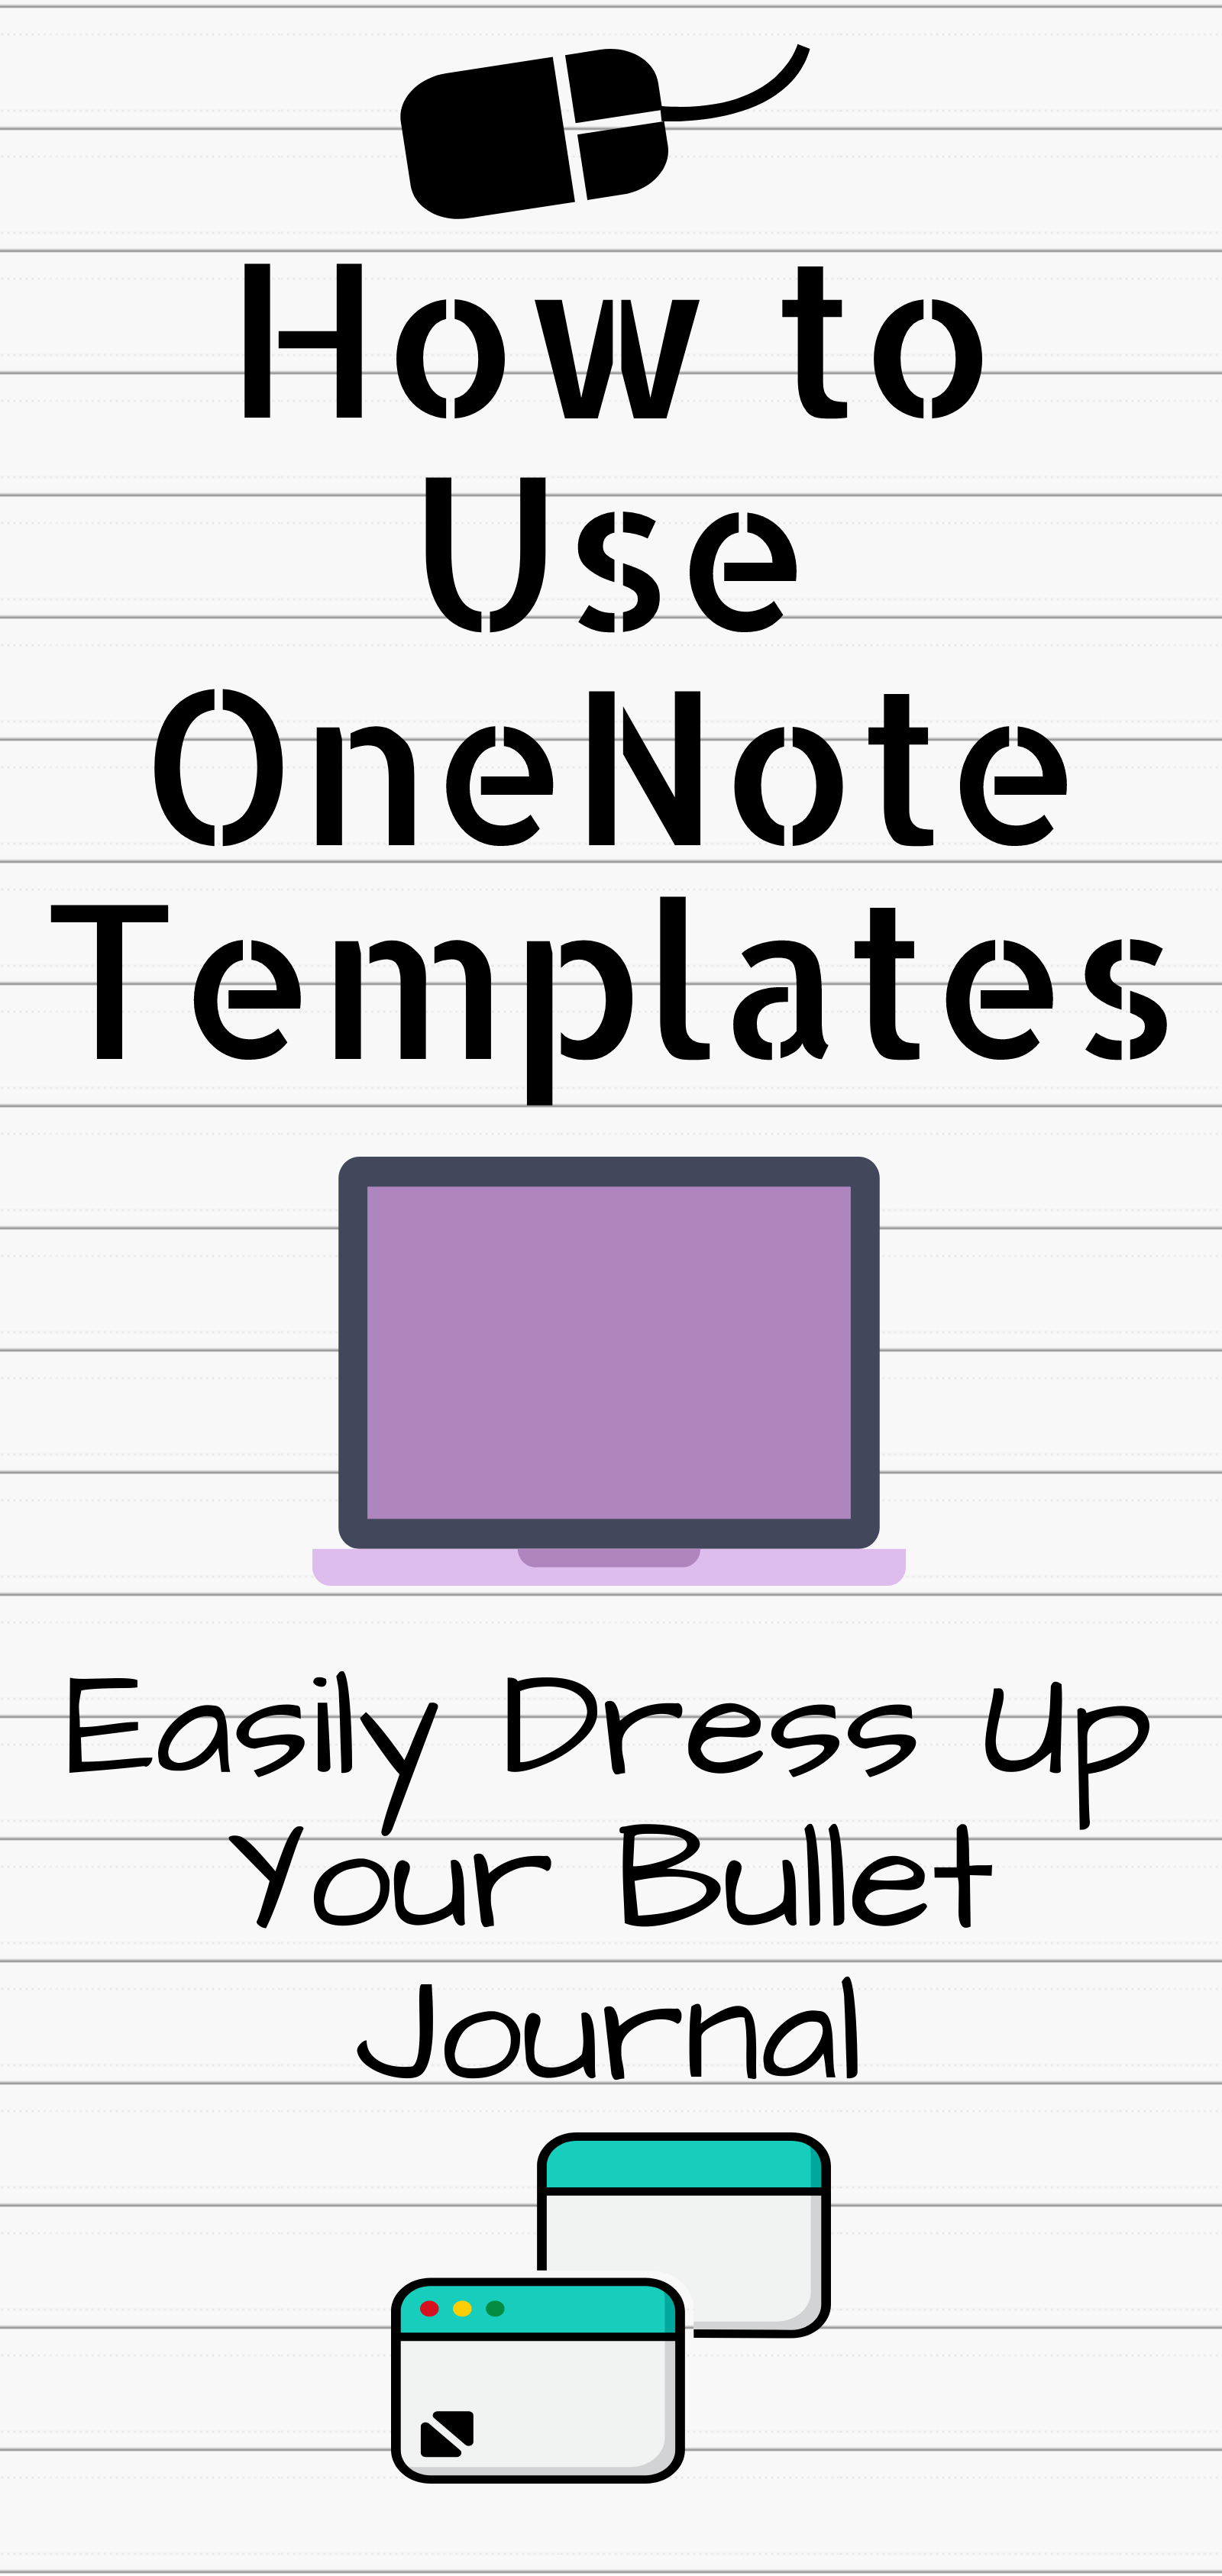 Pin by Sam Niccum on Onenote   Onenote template, Bullet journal